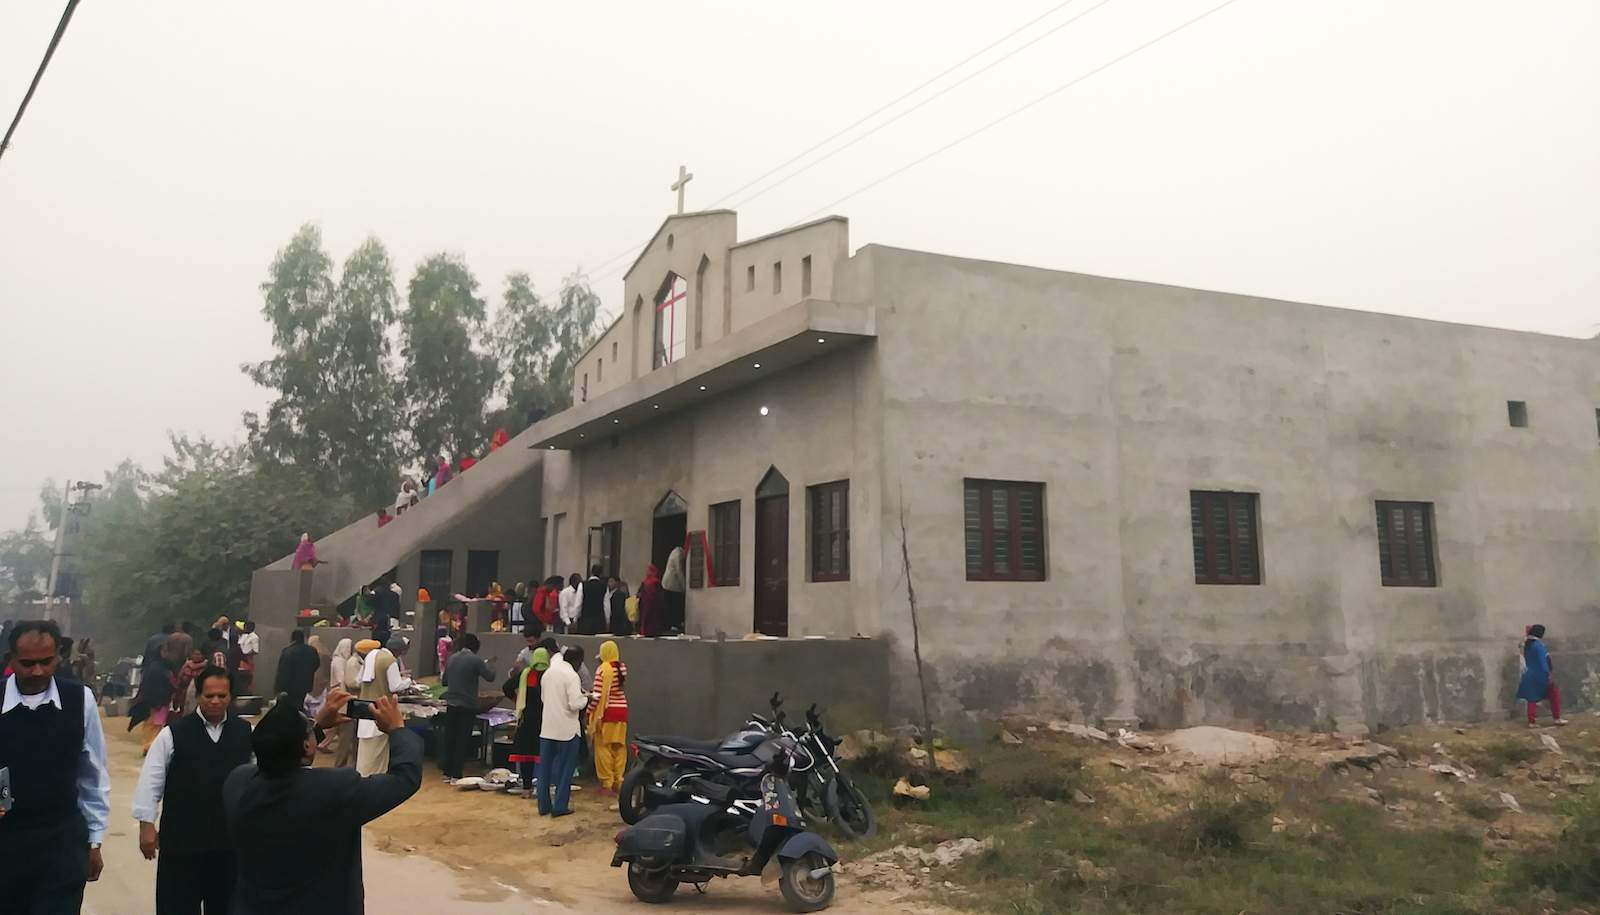 The new, enlarged church building reflects the dramatic growth that took place in less than two years in spite of Pastor Charanjit's brutal persecution.